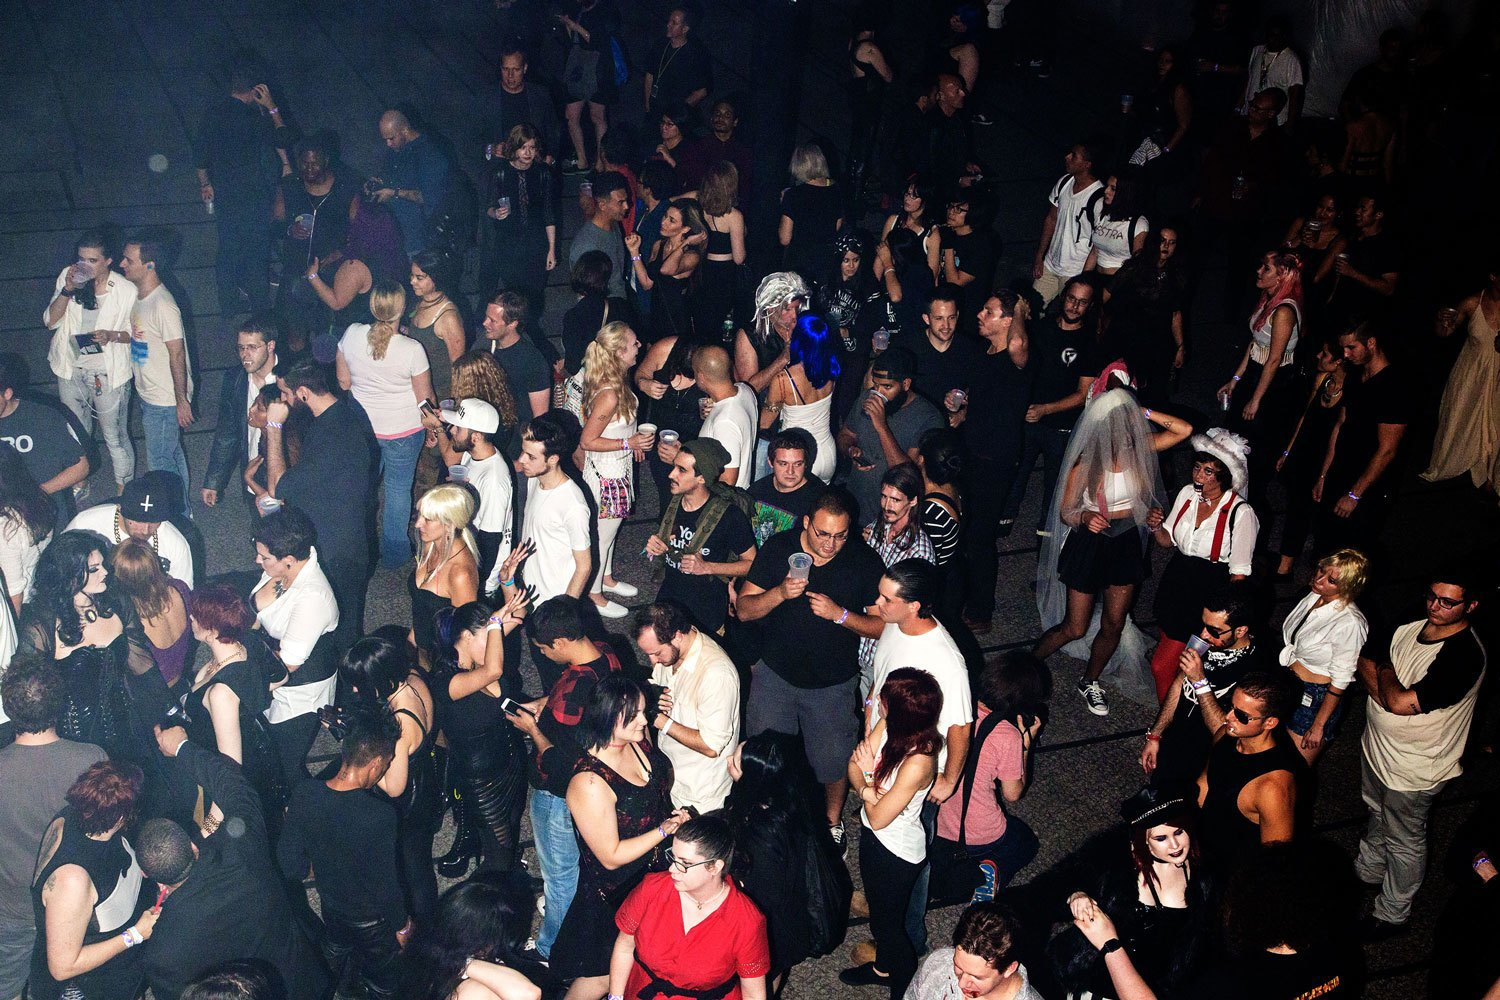 A bloody hot mess of photos from NYC's Blade Rave. Image 17.